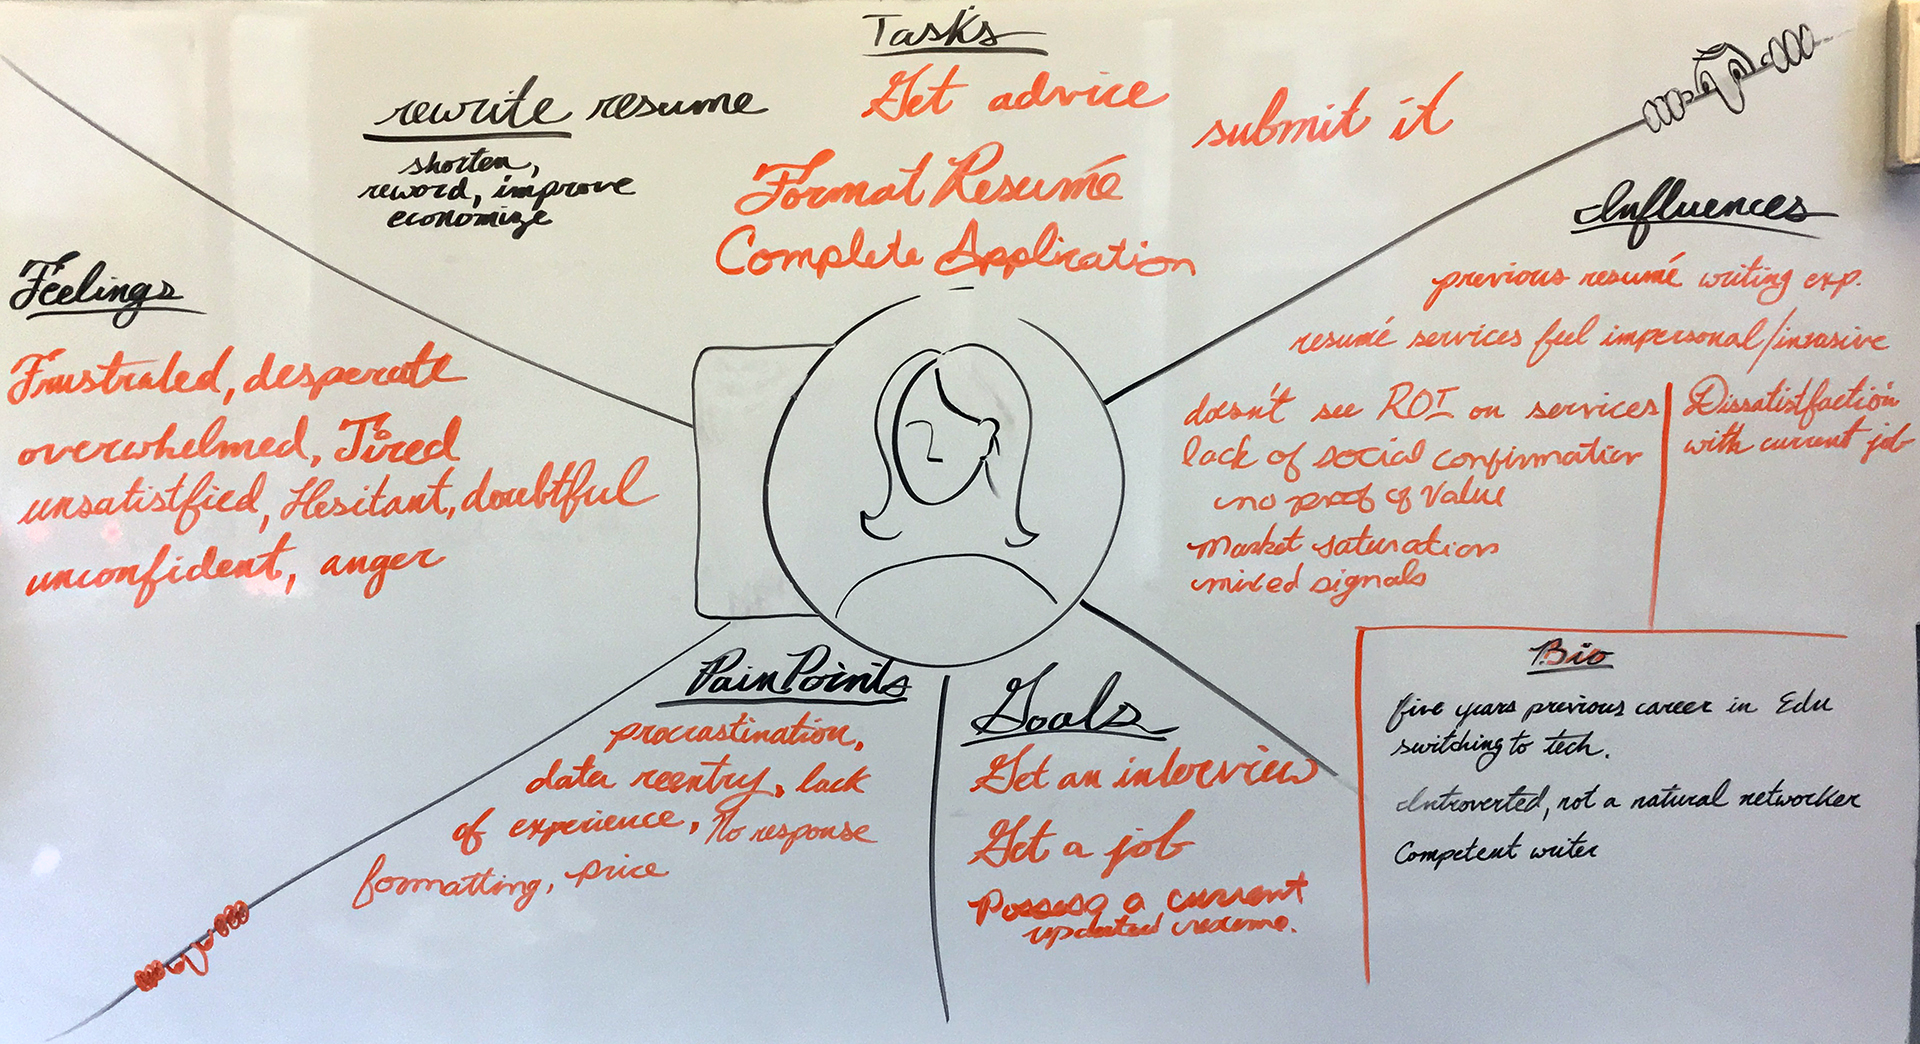 image of the empathy map we built